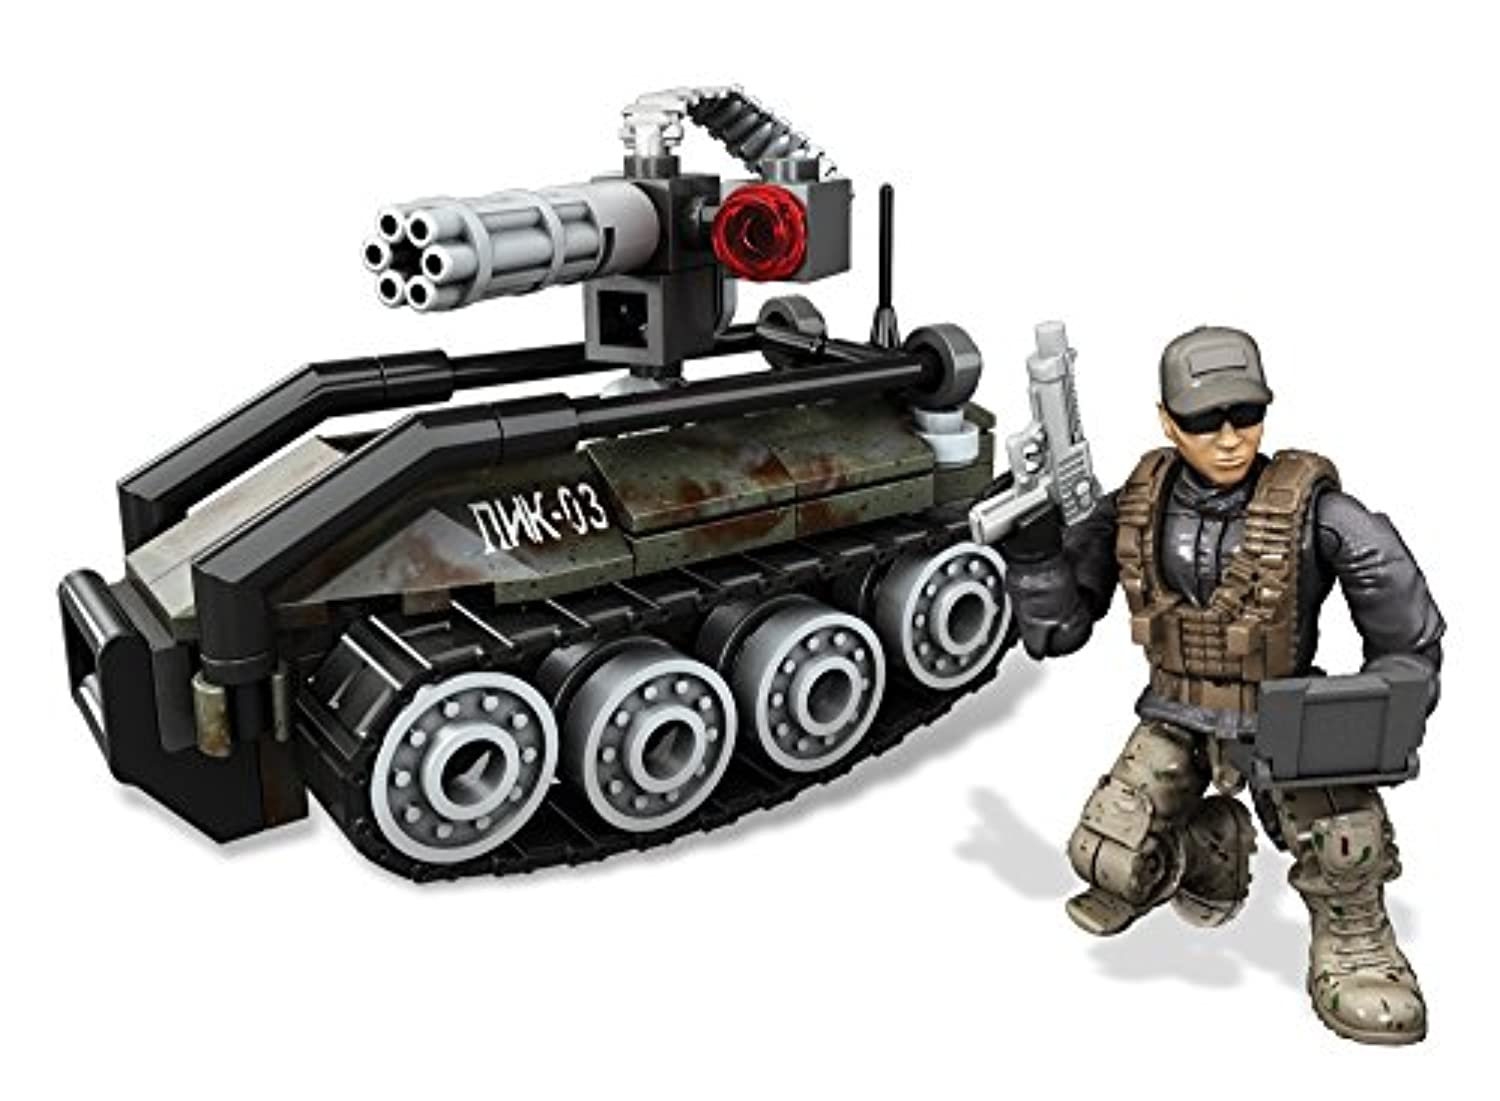 Mega Bloks Call of Duty Assault Stirke UGV Drone 6 Toy